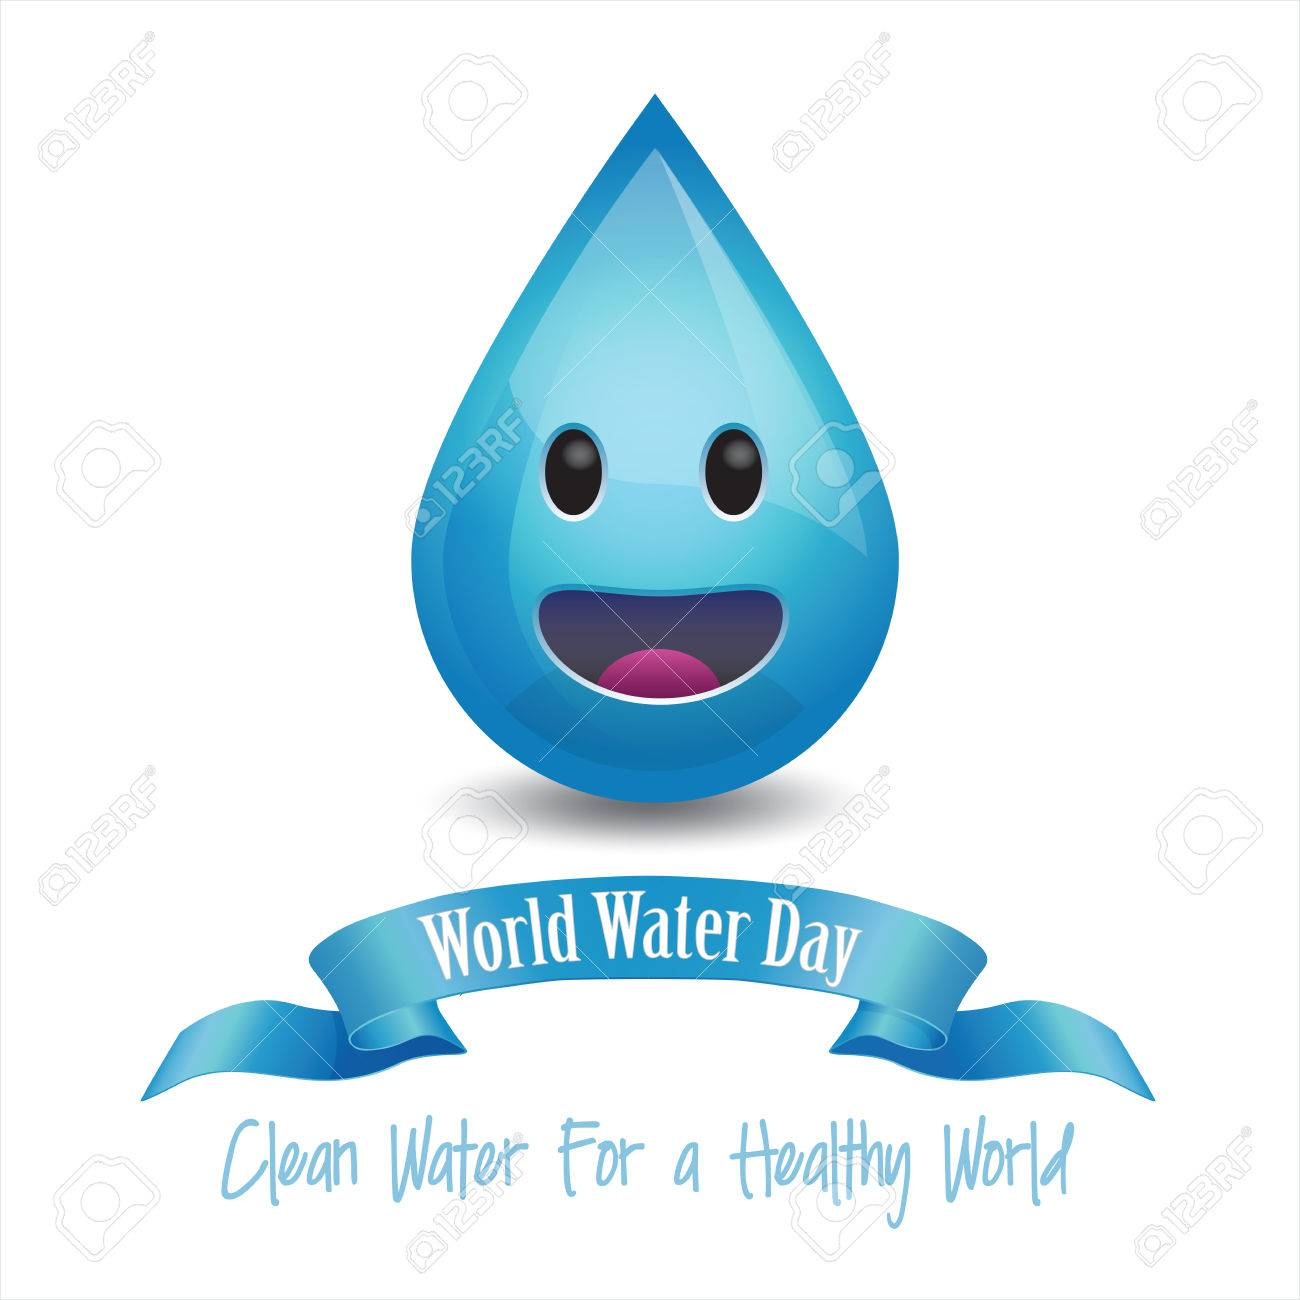 Blue Smiley 3d Happy Face Water Stock Illustration 10128874 ...